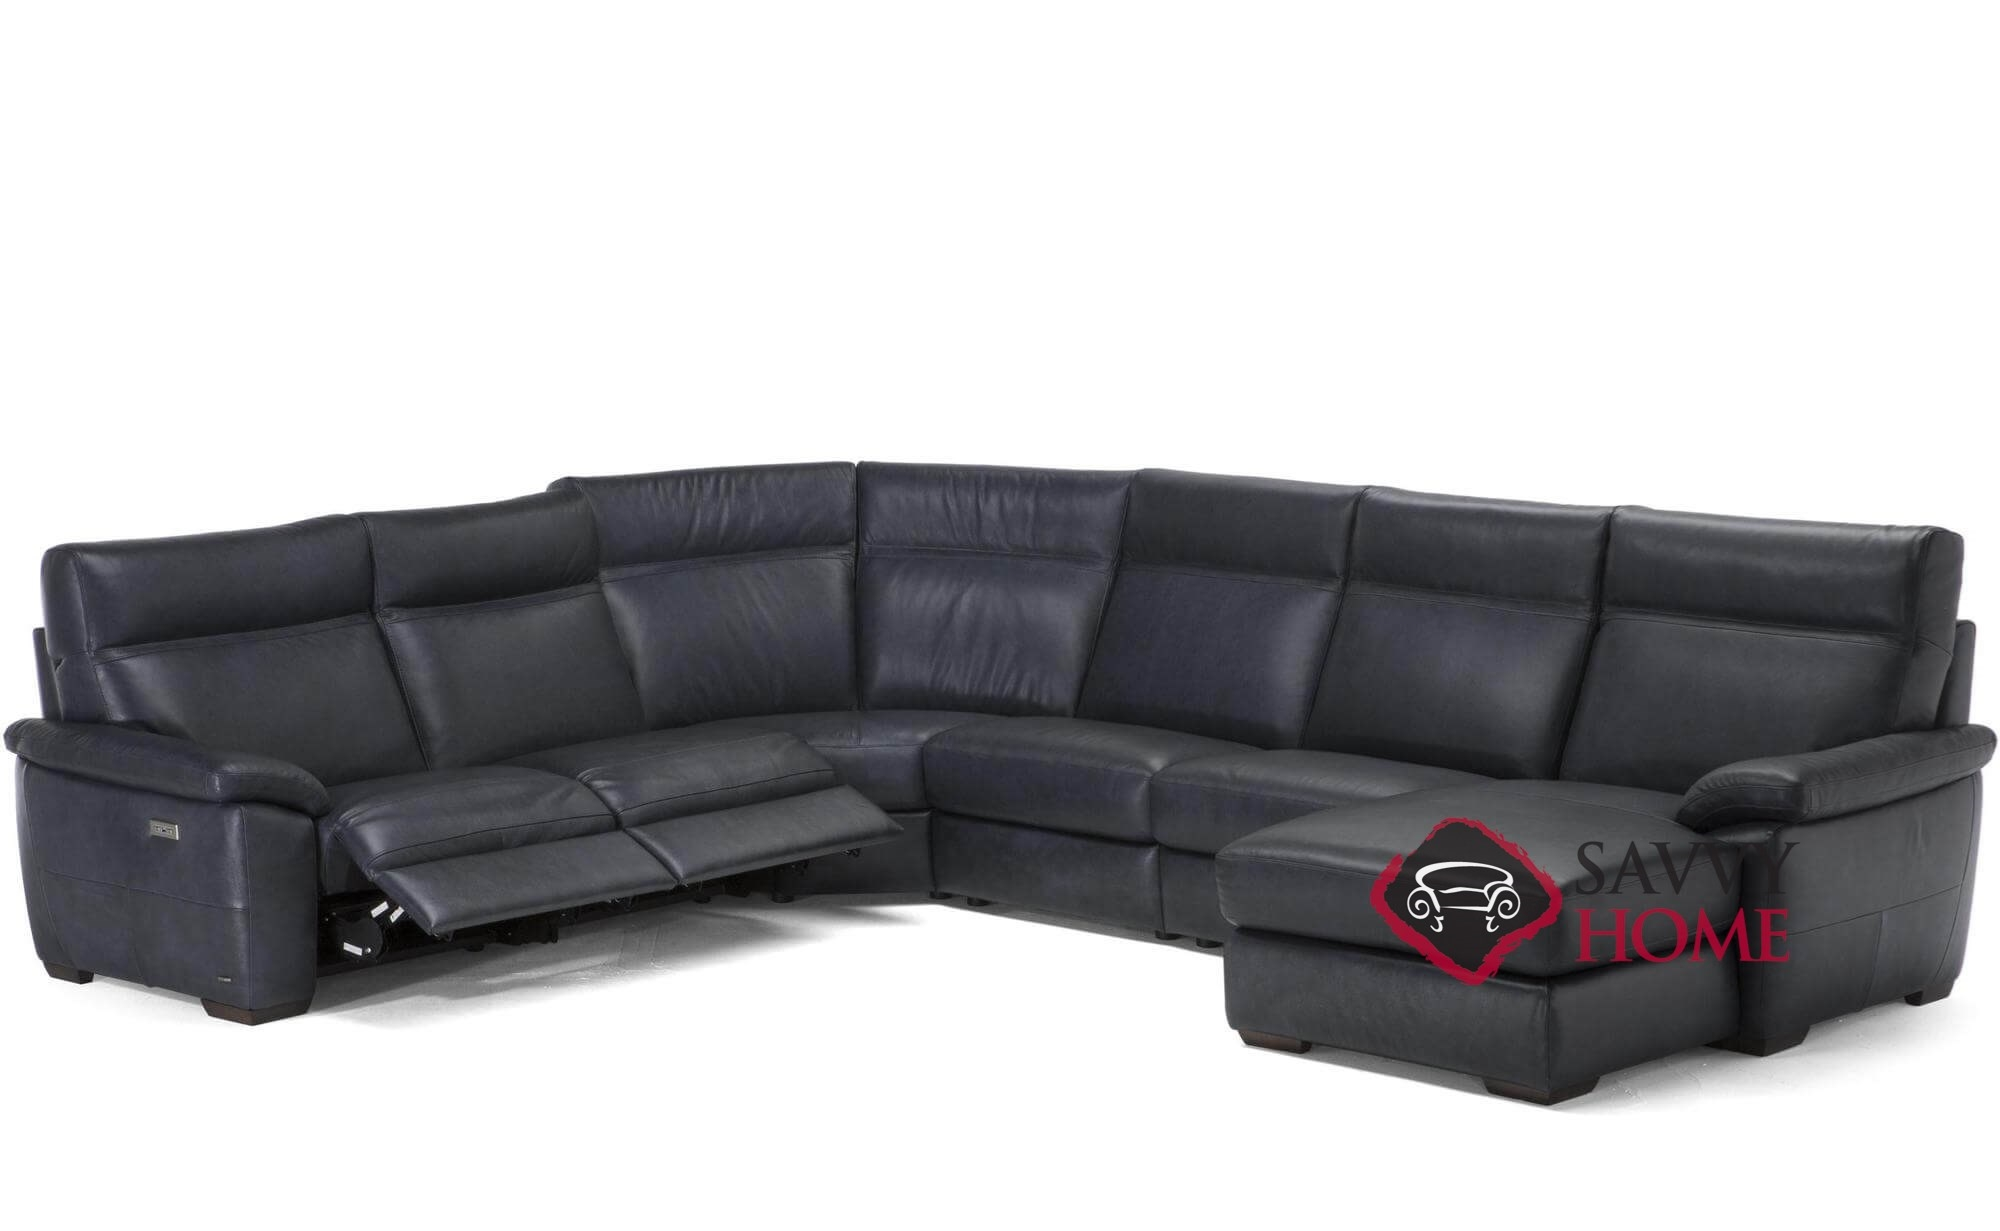 Empatia C007 047 049 291 291 029 638 514 515 Power Reclining Leather True Sectional Sofa With Chaise By Natuzzi